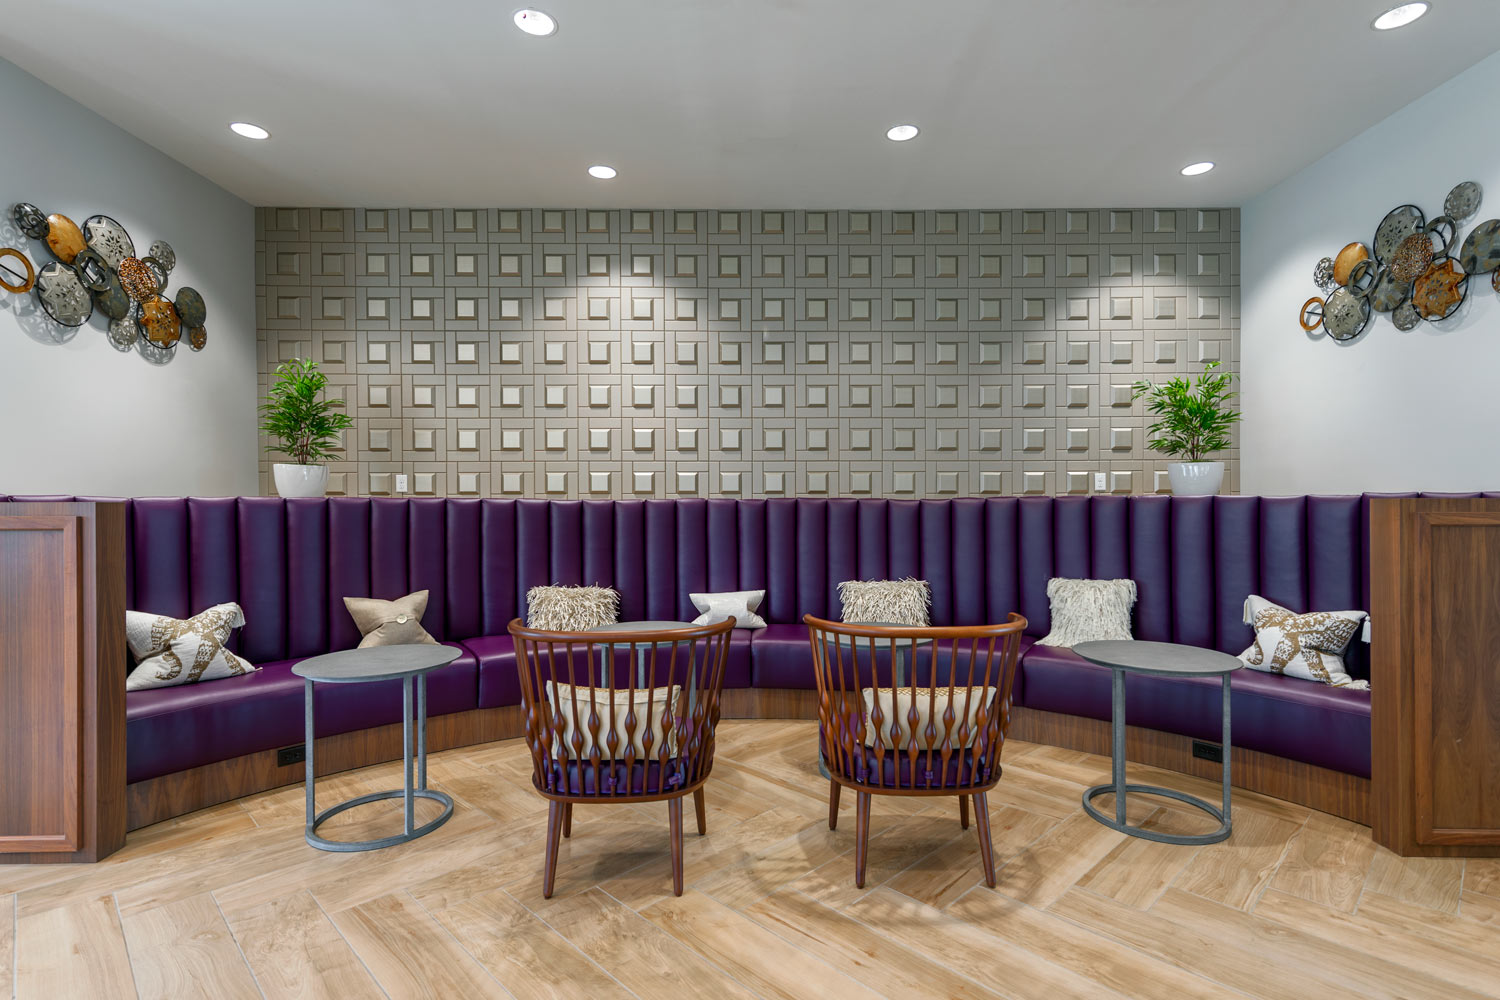 clubhouse with booth seating area, tables, chairs, and modern artwork - luxury apartments near christiana mall